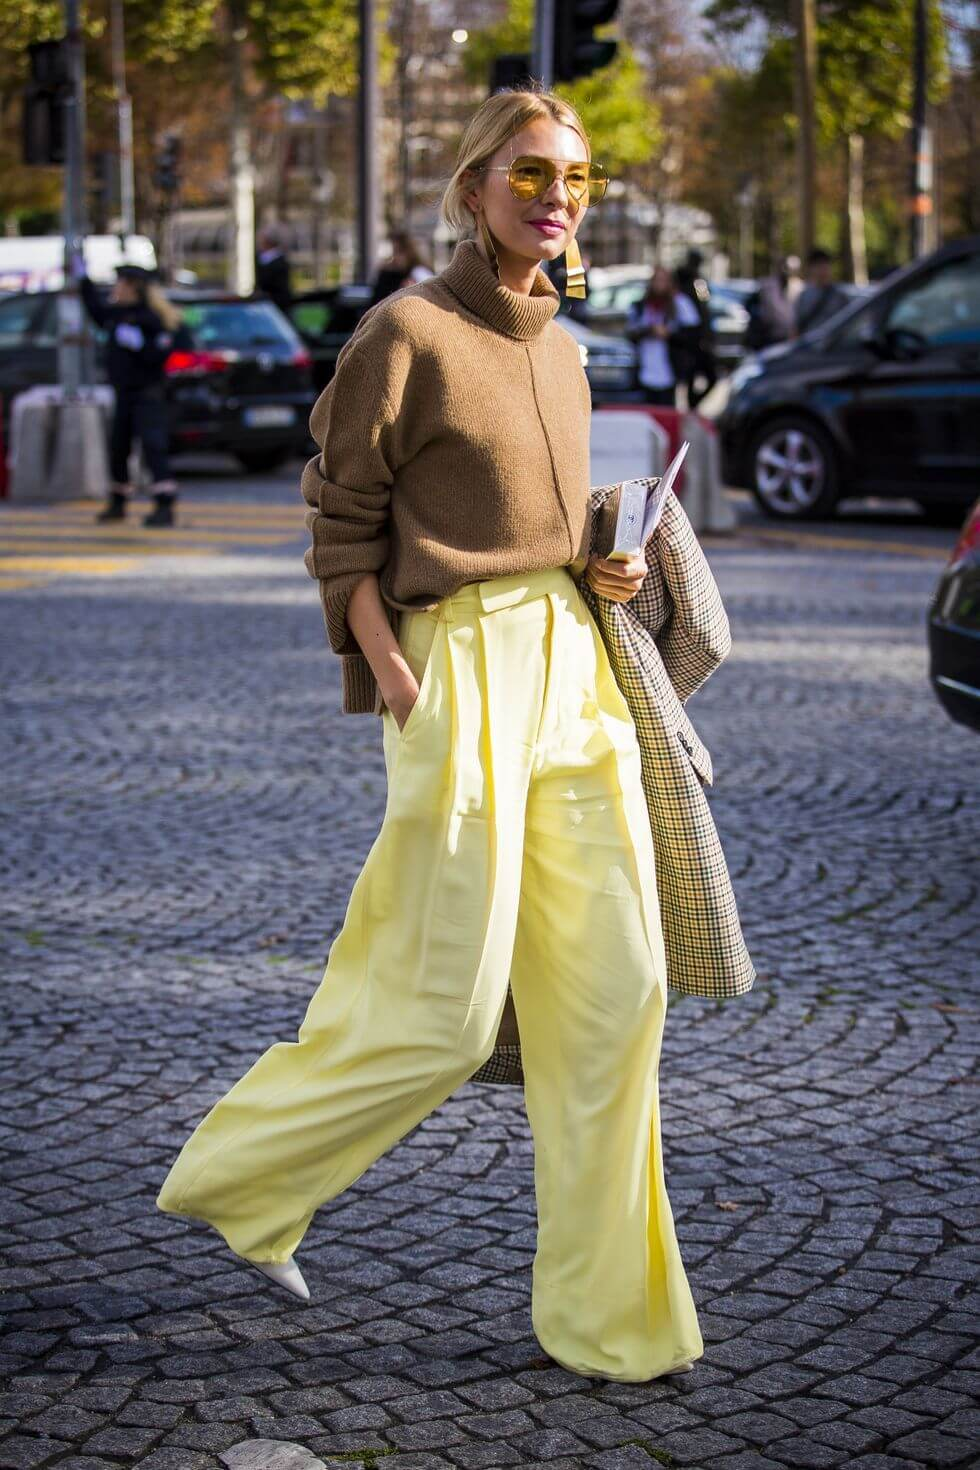 Yellow Camel Outfit